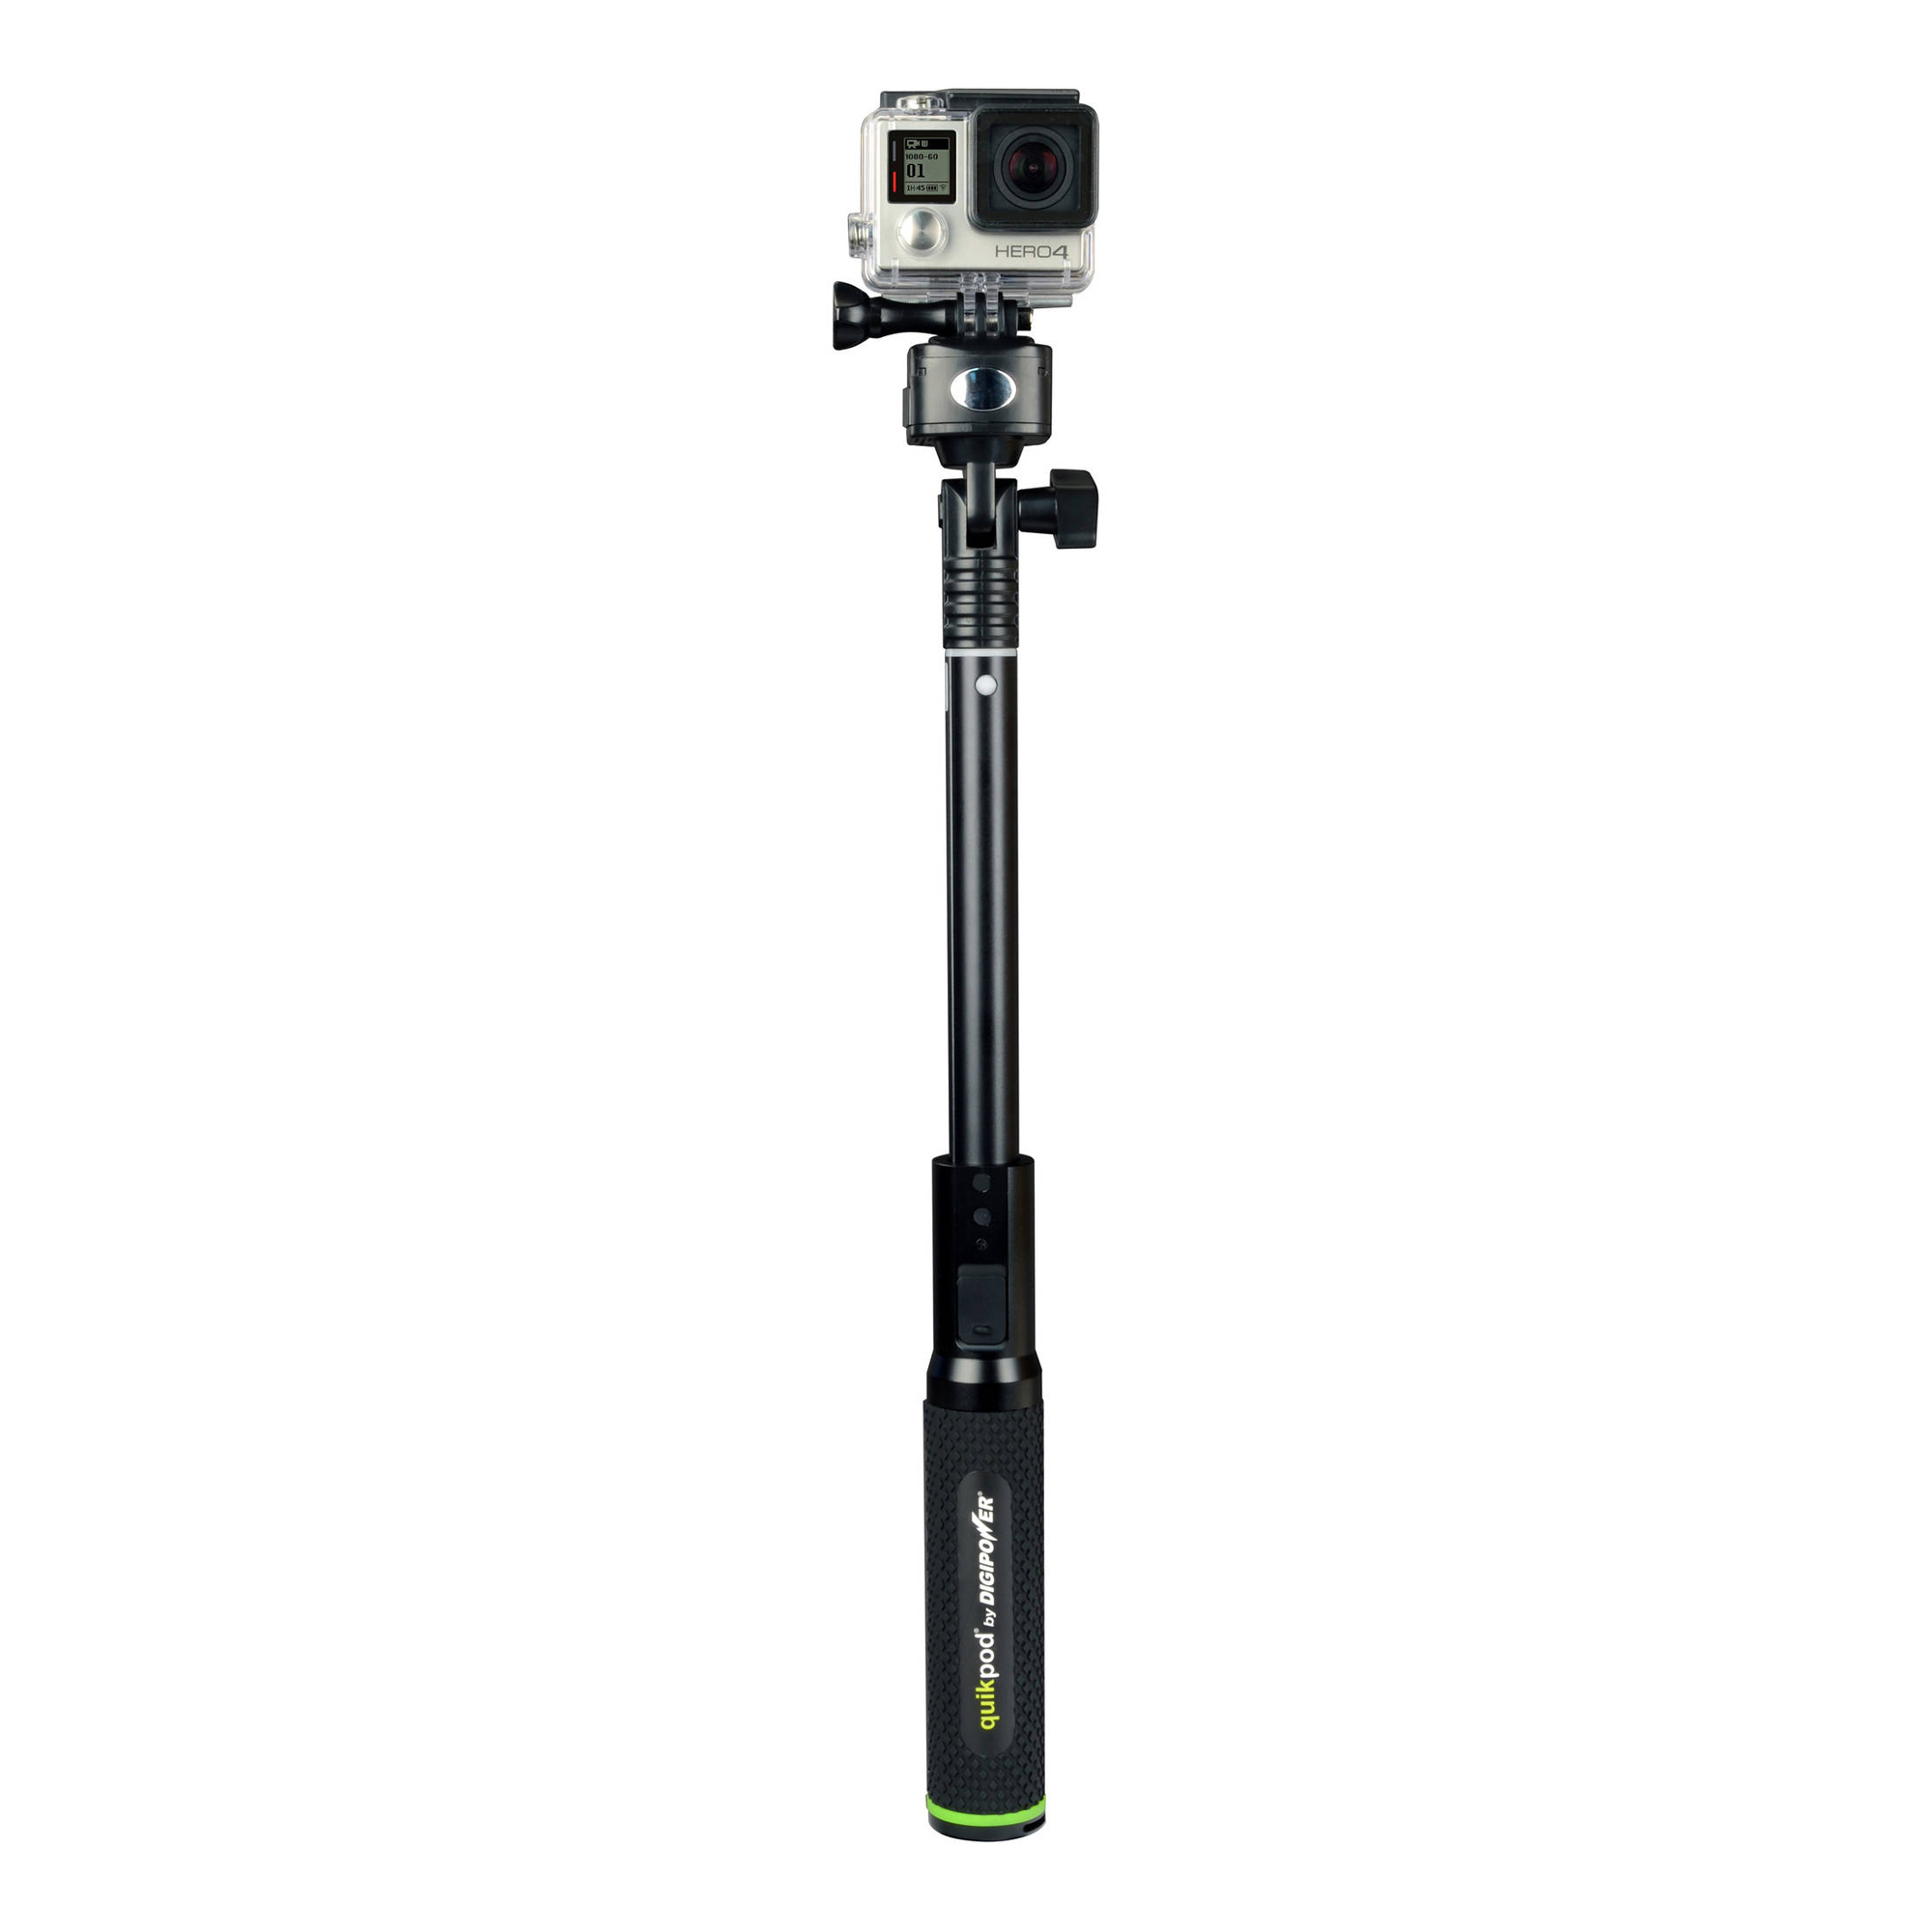 Re-Fuel QuickPod Selfie Stick Power Bank